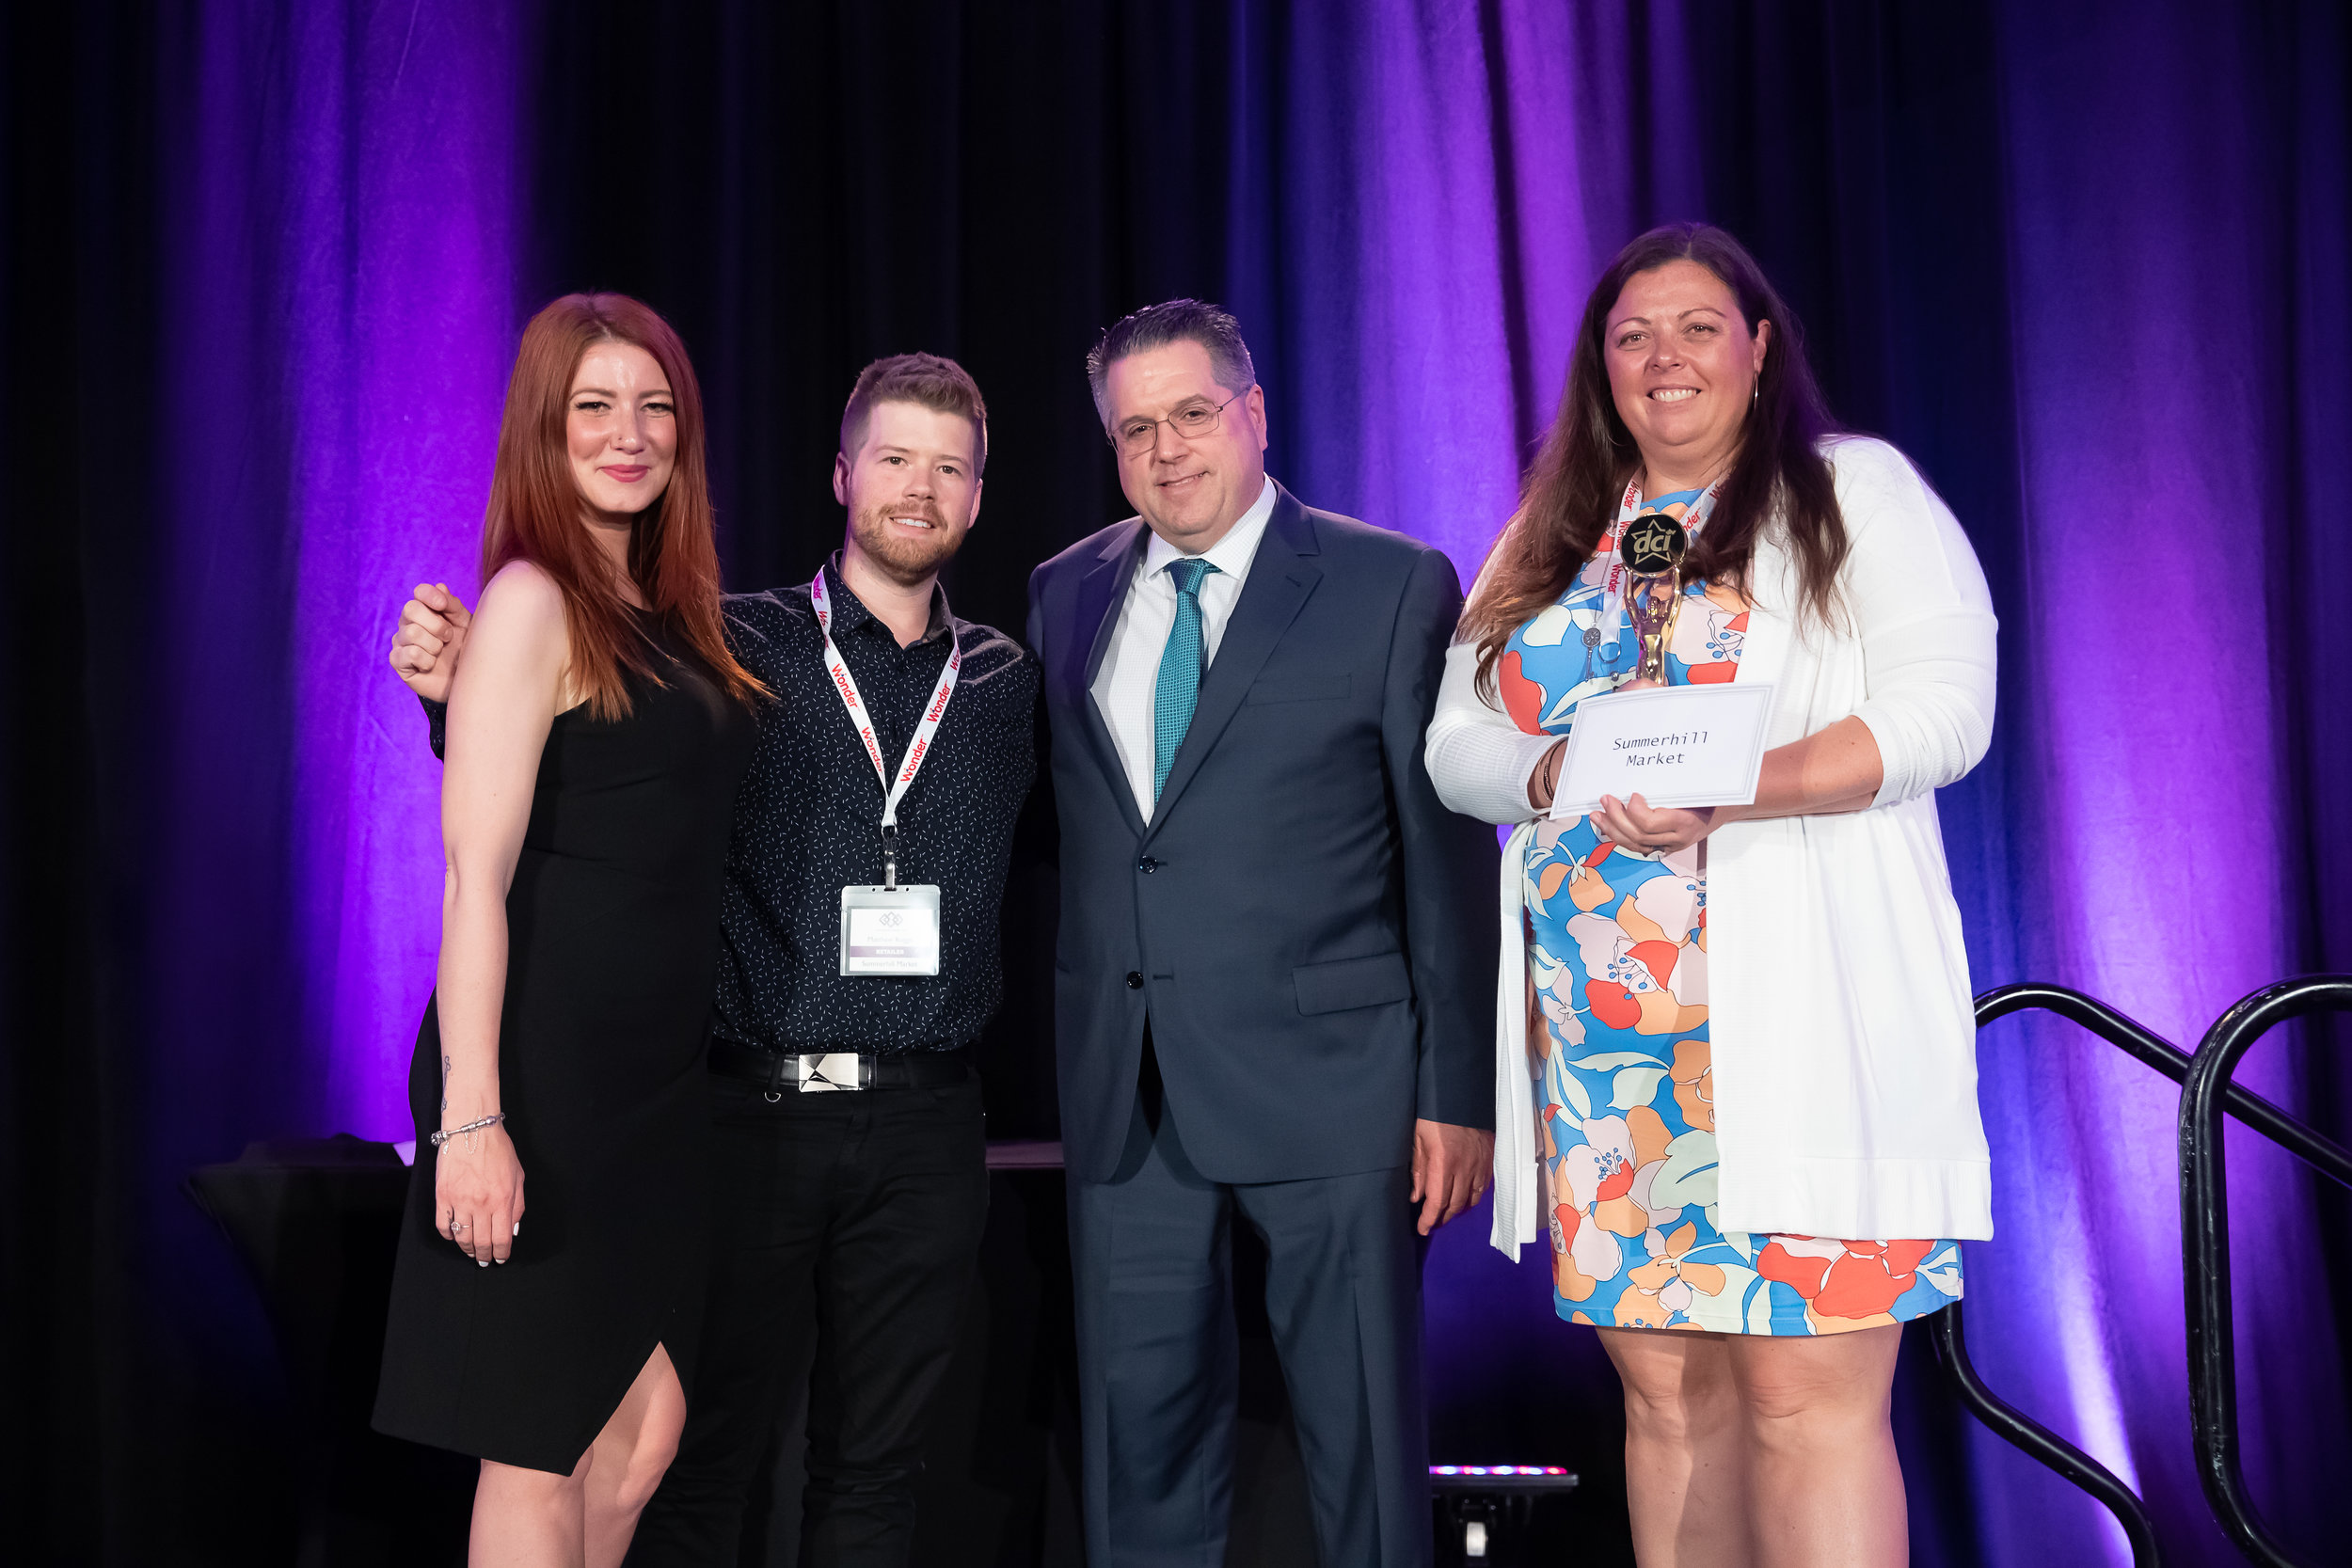 Star Awards Presenter Melissa Lynne-Schaffer, Matthew Rogger of Summerhill Market, DCI Chair David La Mantia of La Mantia's Country Market, and Christy McMullen of Summerhill Market